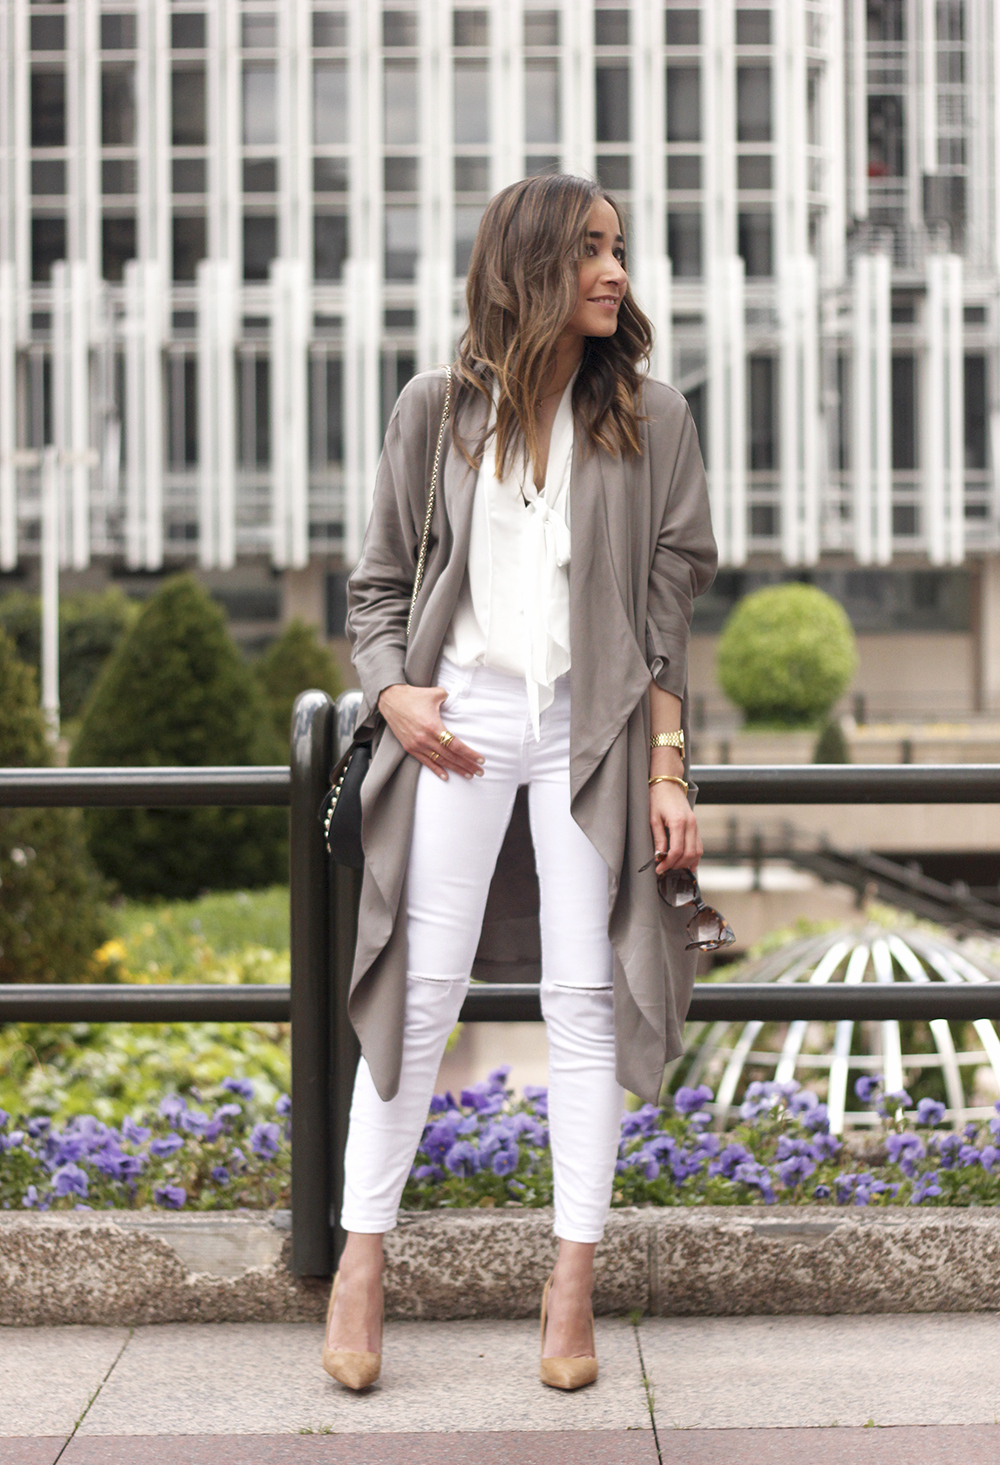 grey and white outfit trench spring streetstyle sunnies nude heels ripped jeans07